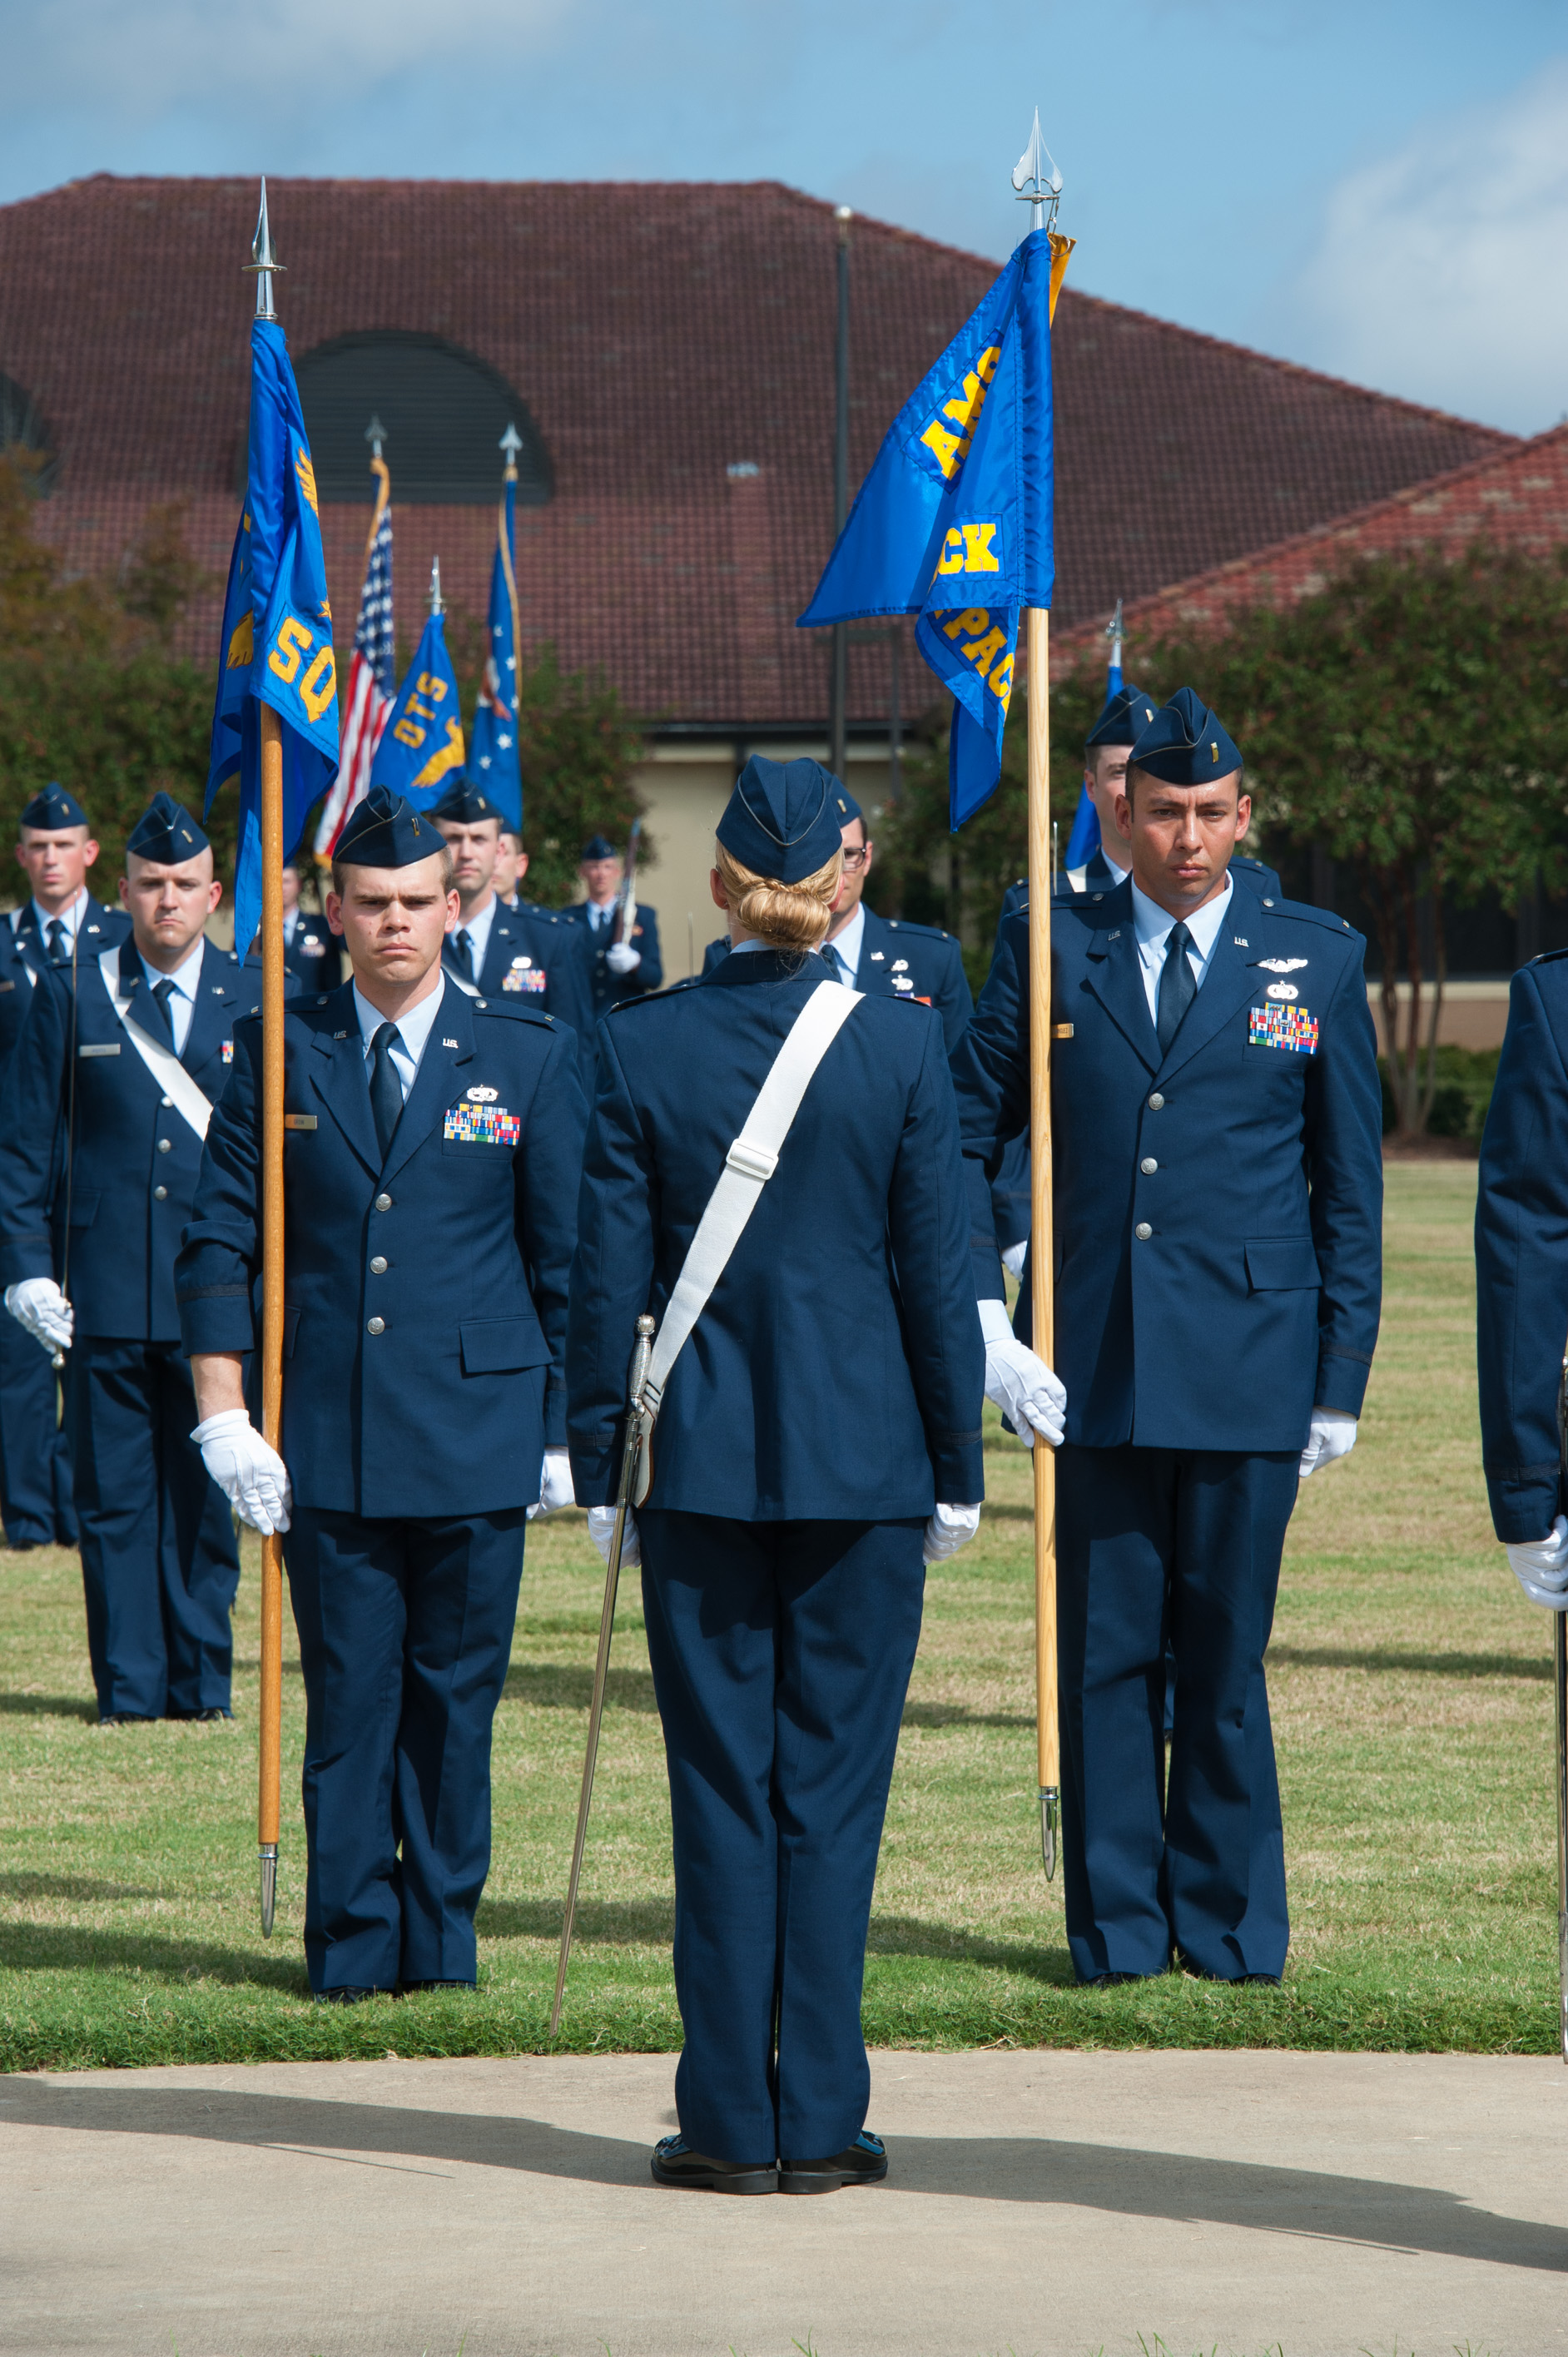 Officer training school graduates first total force class u s air force article display - Military officer training school ...